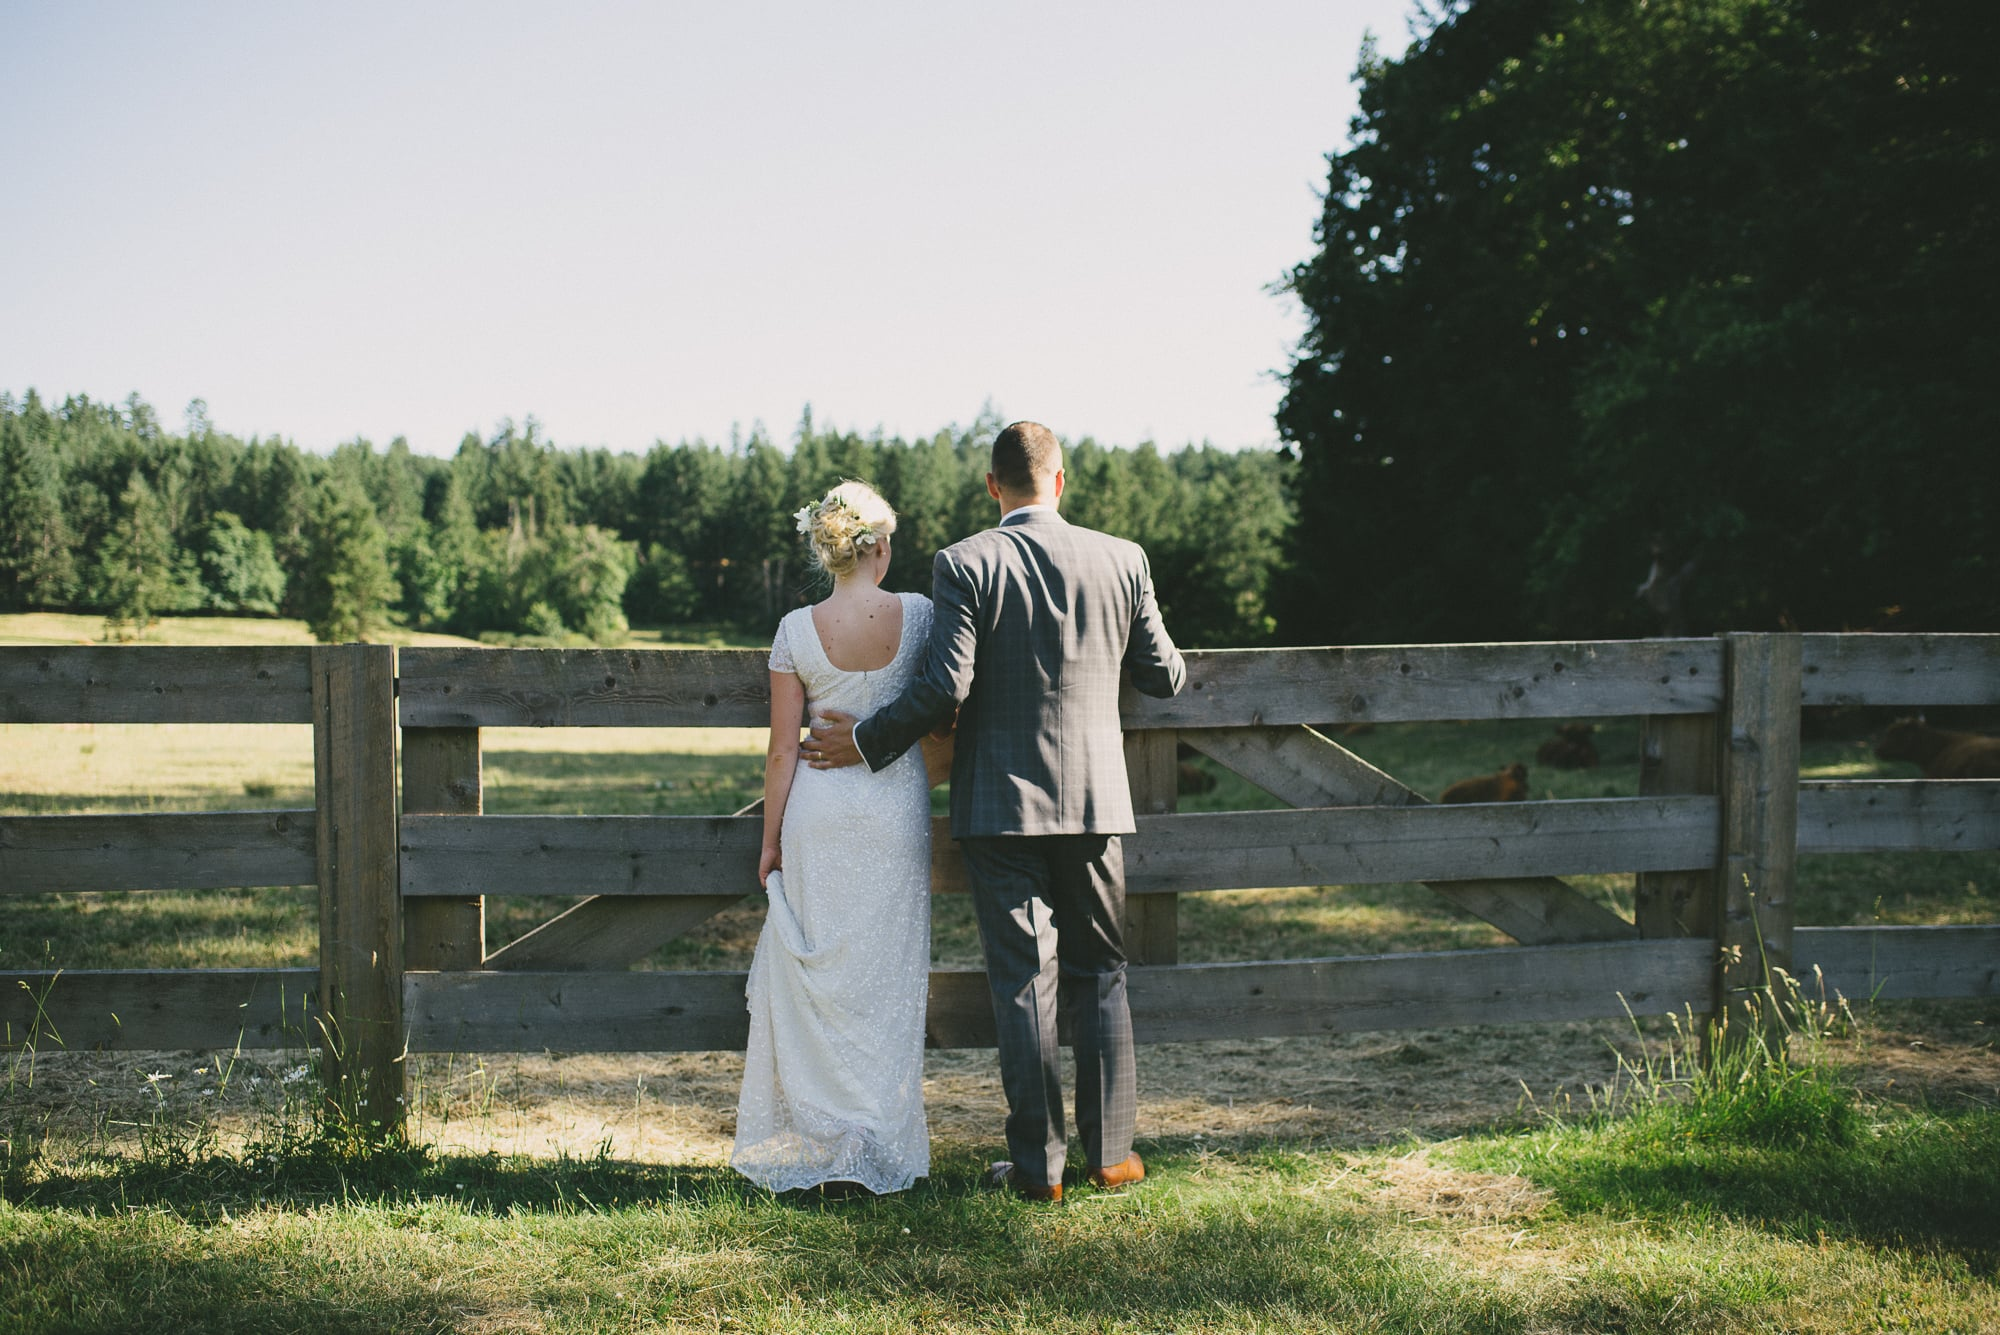 76-birdseye-cove-farm-wedding-sara-rogers-photography.jpg